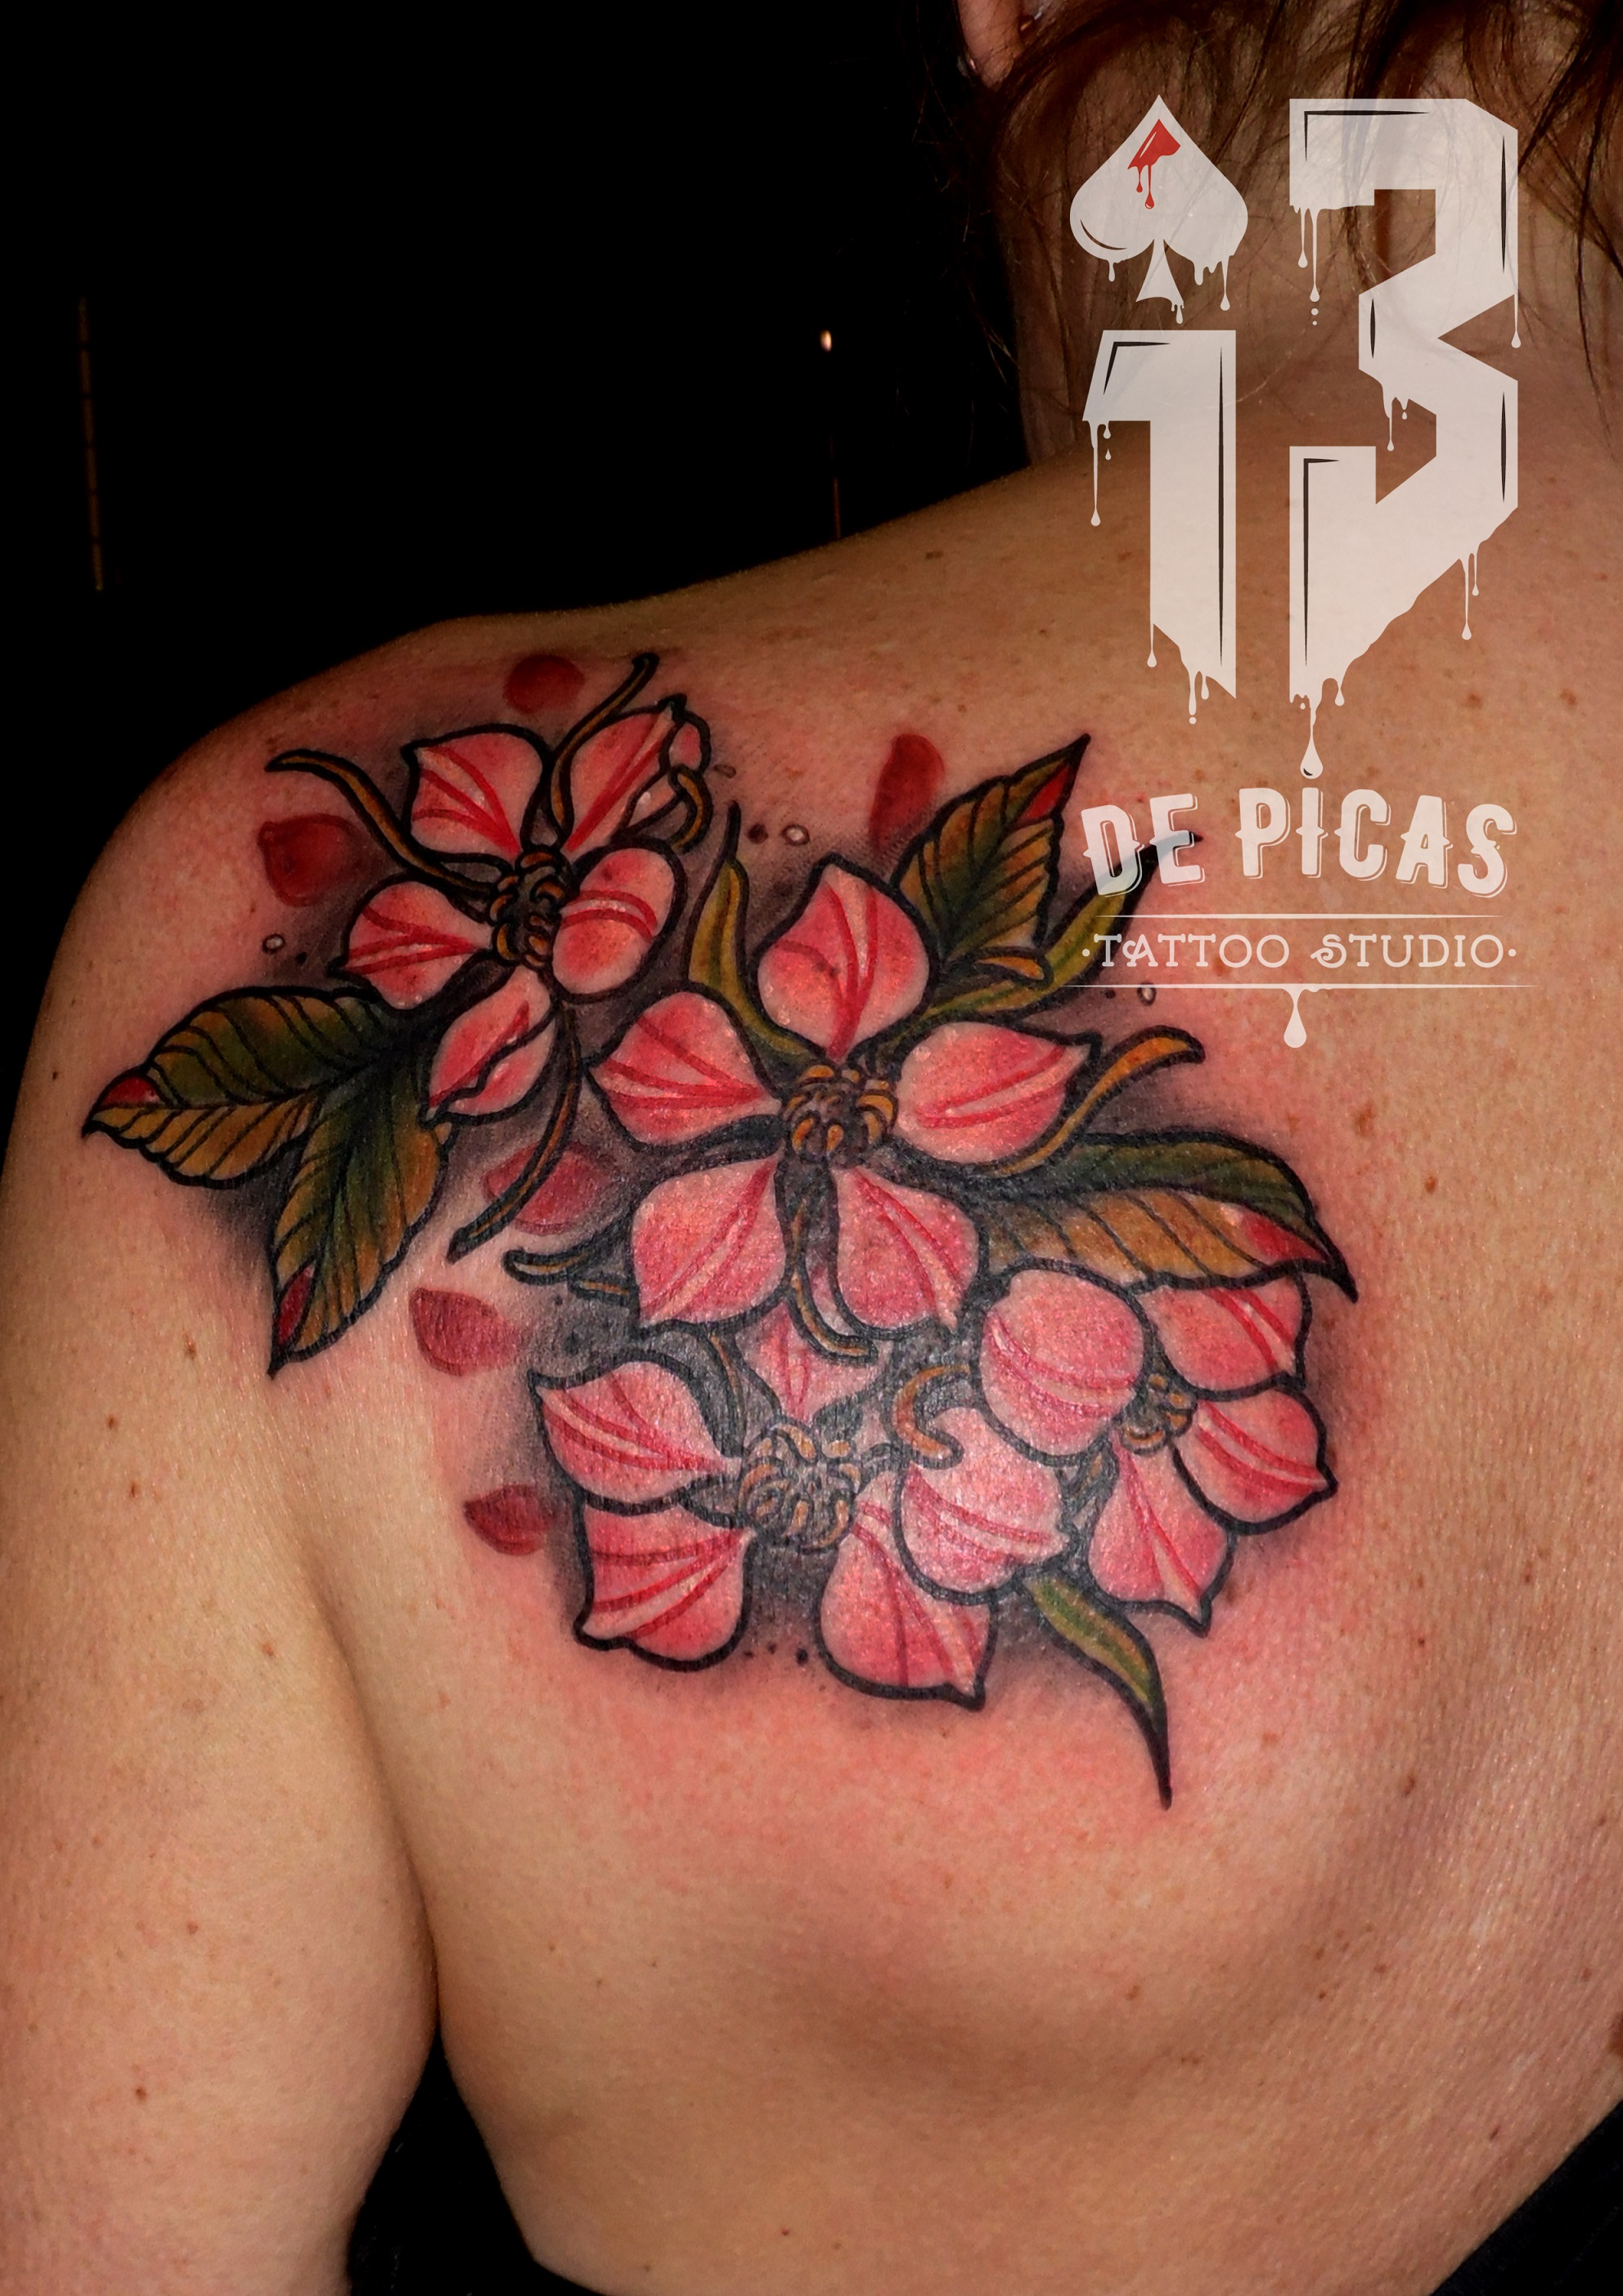 tatuaje tattoo cover tapado flores cerezo espalda color 13depicas jaca huesca